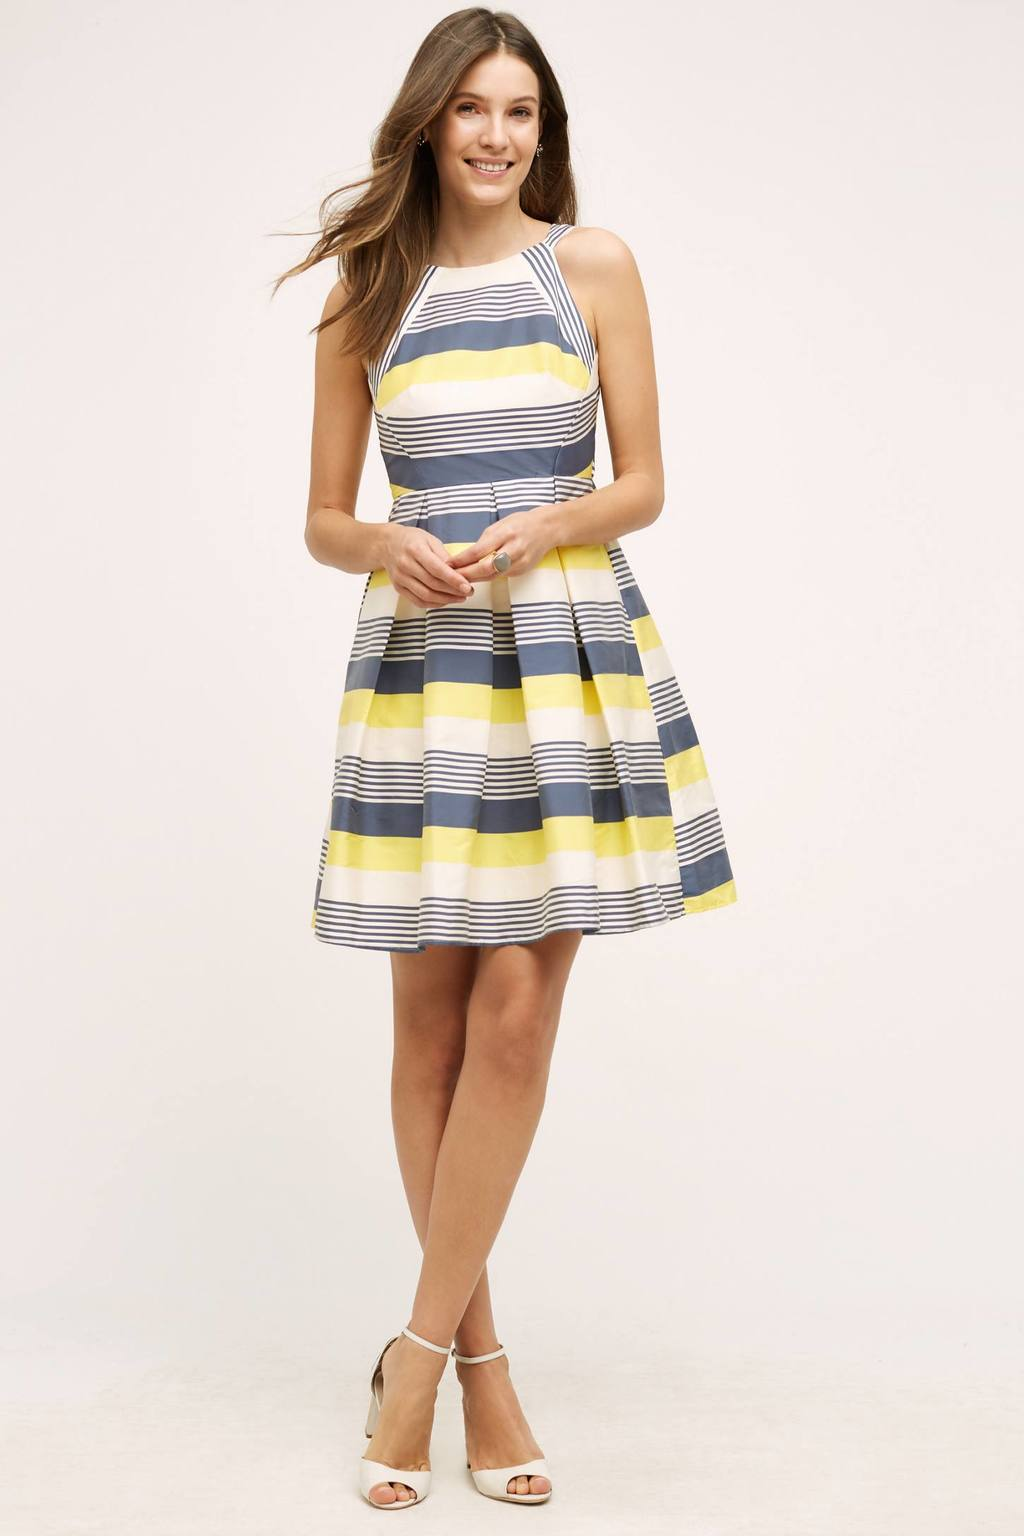 Canary Lined Dress - neckline: round neck; pattern: horizontal stripes; sleeve style: sleeveless; secondary colour: yellow; predominant colour: light grey; occasions: evening; length: just above the knee; fit: fitted at waist & bust; style: fit & flare; fibres: polyester/polyamide - 100%; sleeve length: sleeveless; pattern type: fabric; texture group: other - light to midweight; season: s/s 2016; wardrobe: event